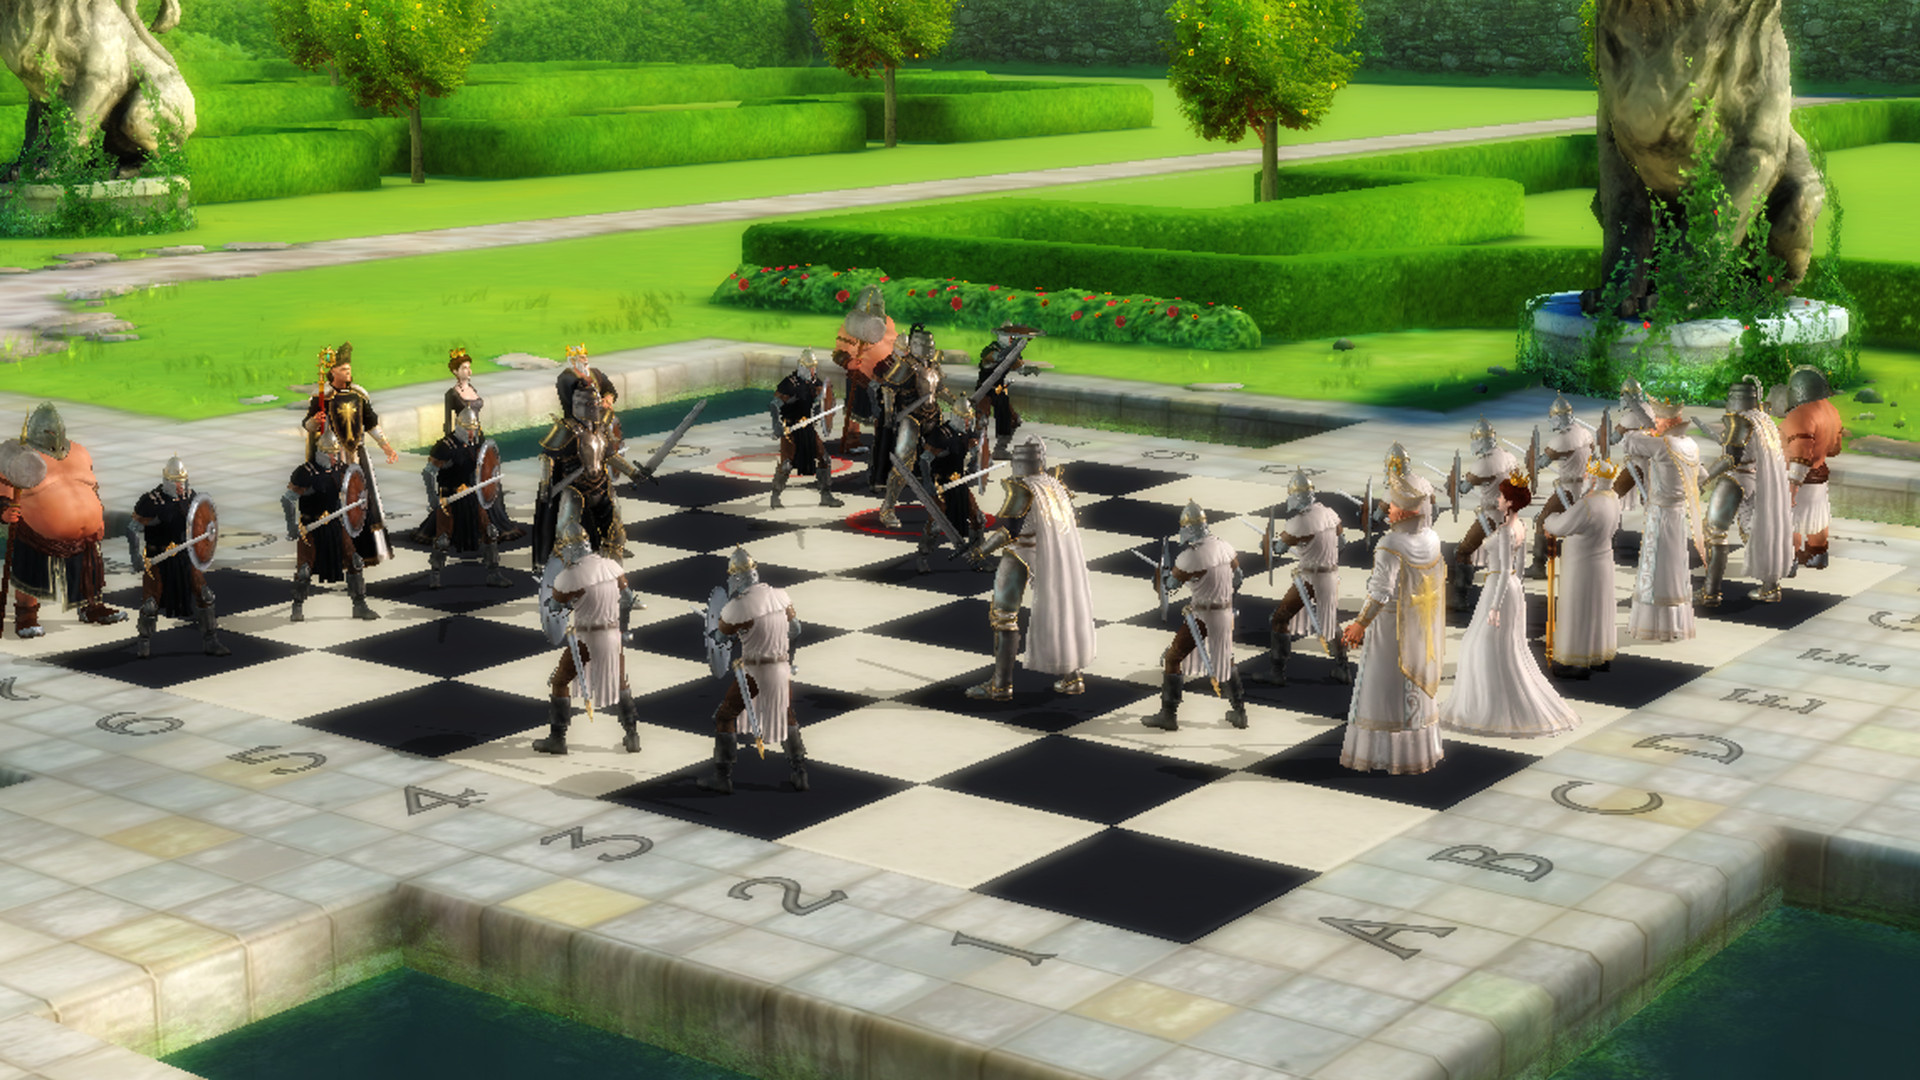 Chess Board 3d Wallpaper Game Fix Crack Battle Chess Game Of Kings B8227 All No